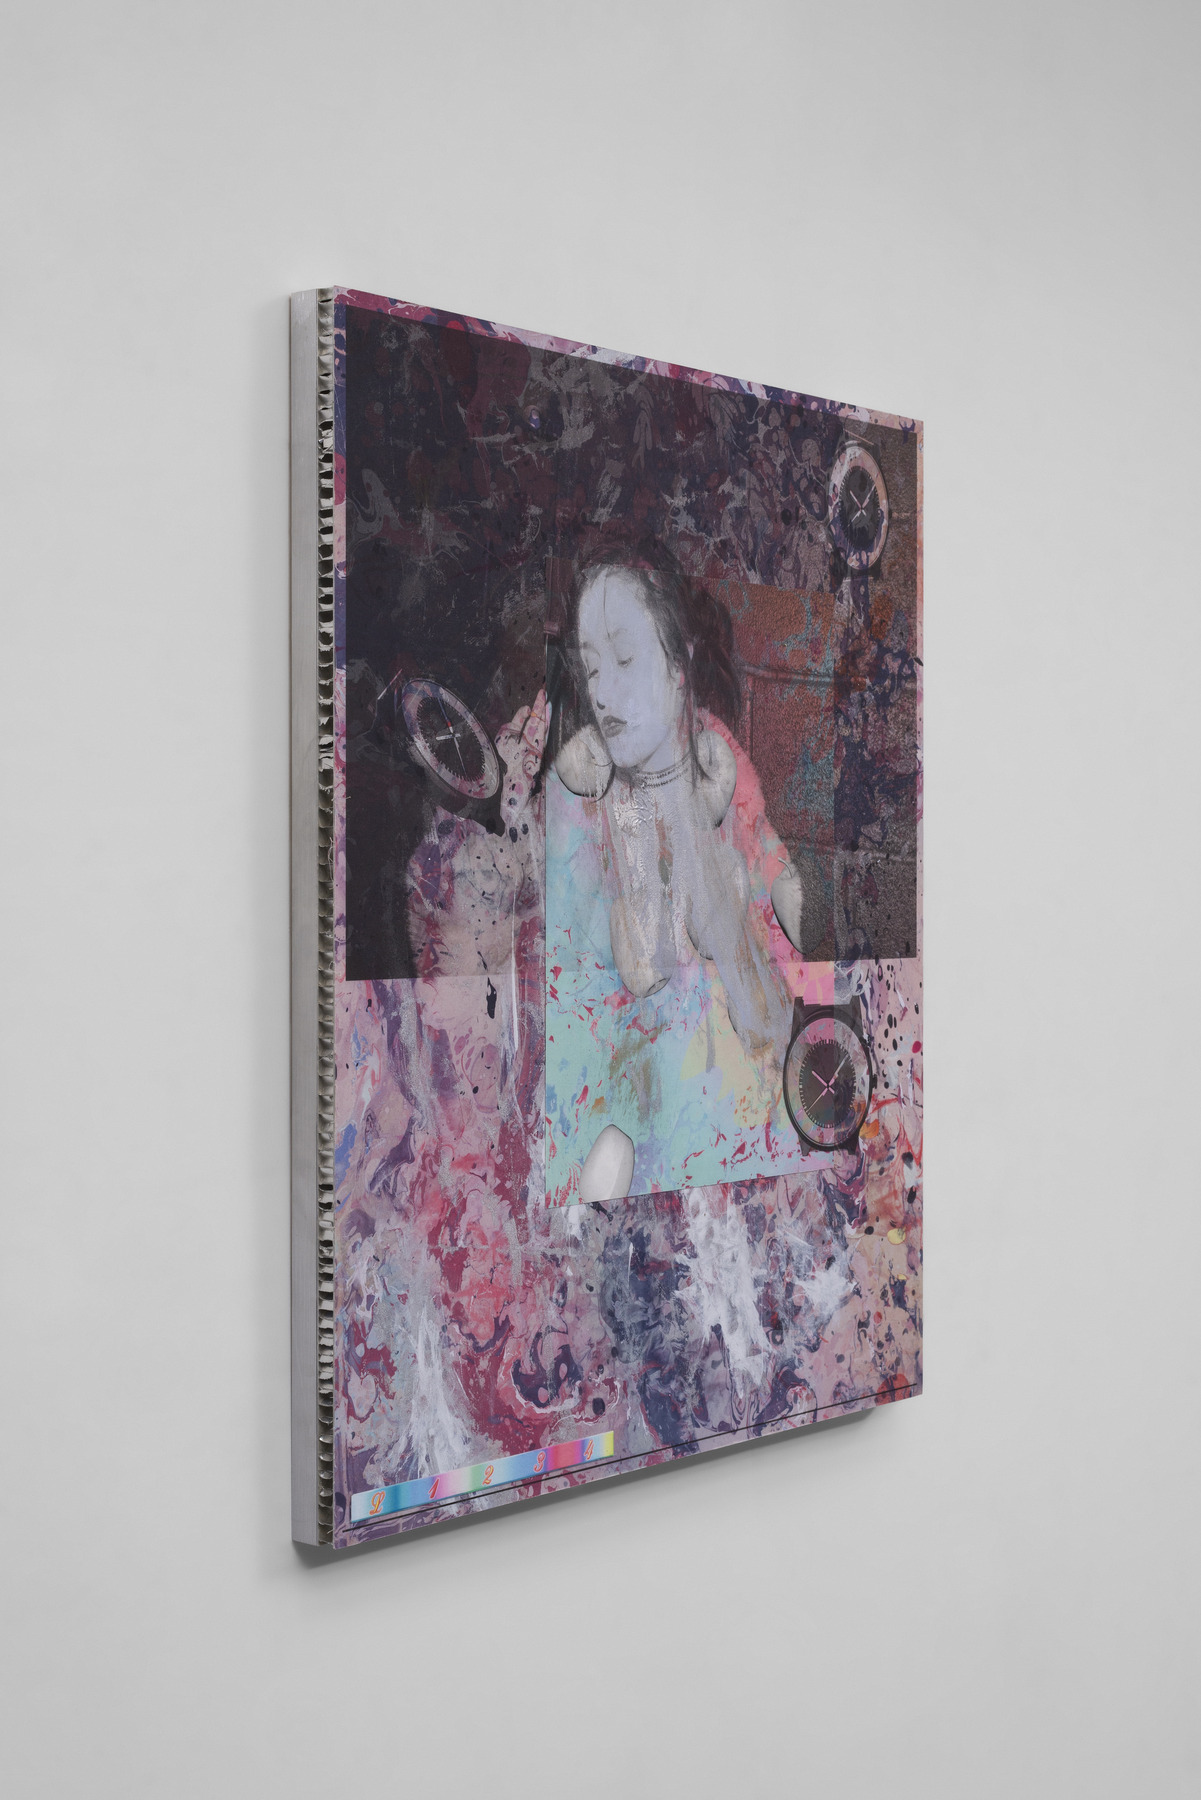 21. Mull_Theoretical Children (Luna Miu), 2015_K3 ink, ultra-violet ink and acrylic on cotton mounted on honeycomb aluminum_26x21 in_side view